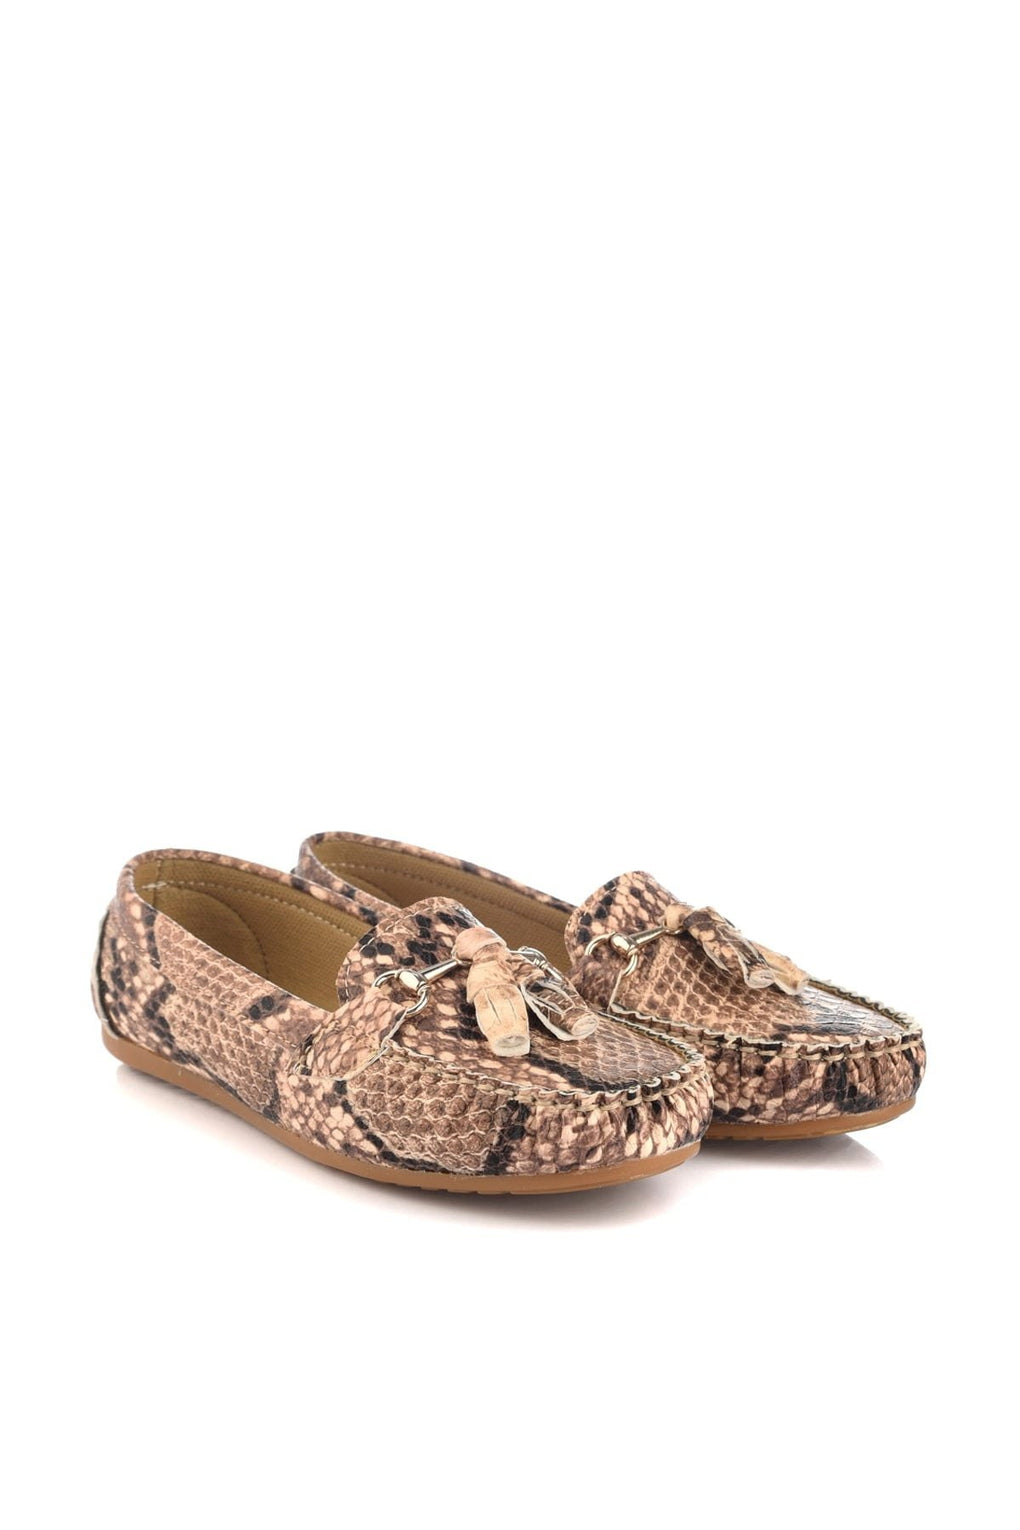 ,klozetstyle-com,Snake Pattern Loafer Shoes